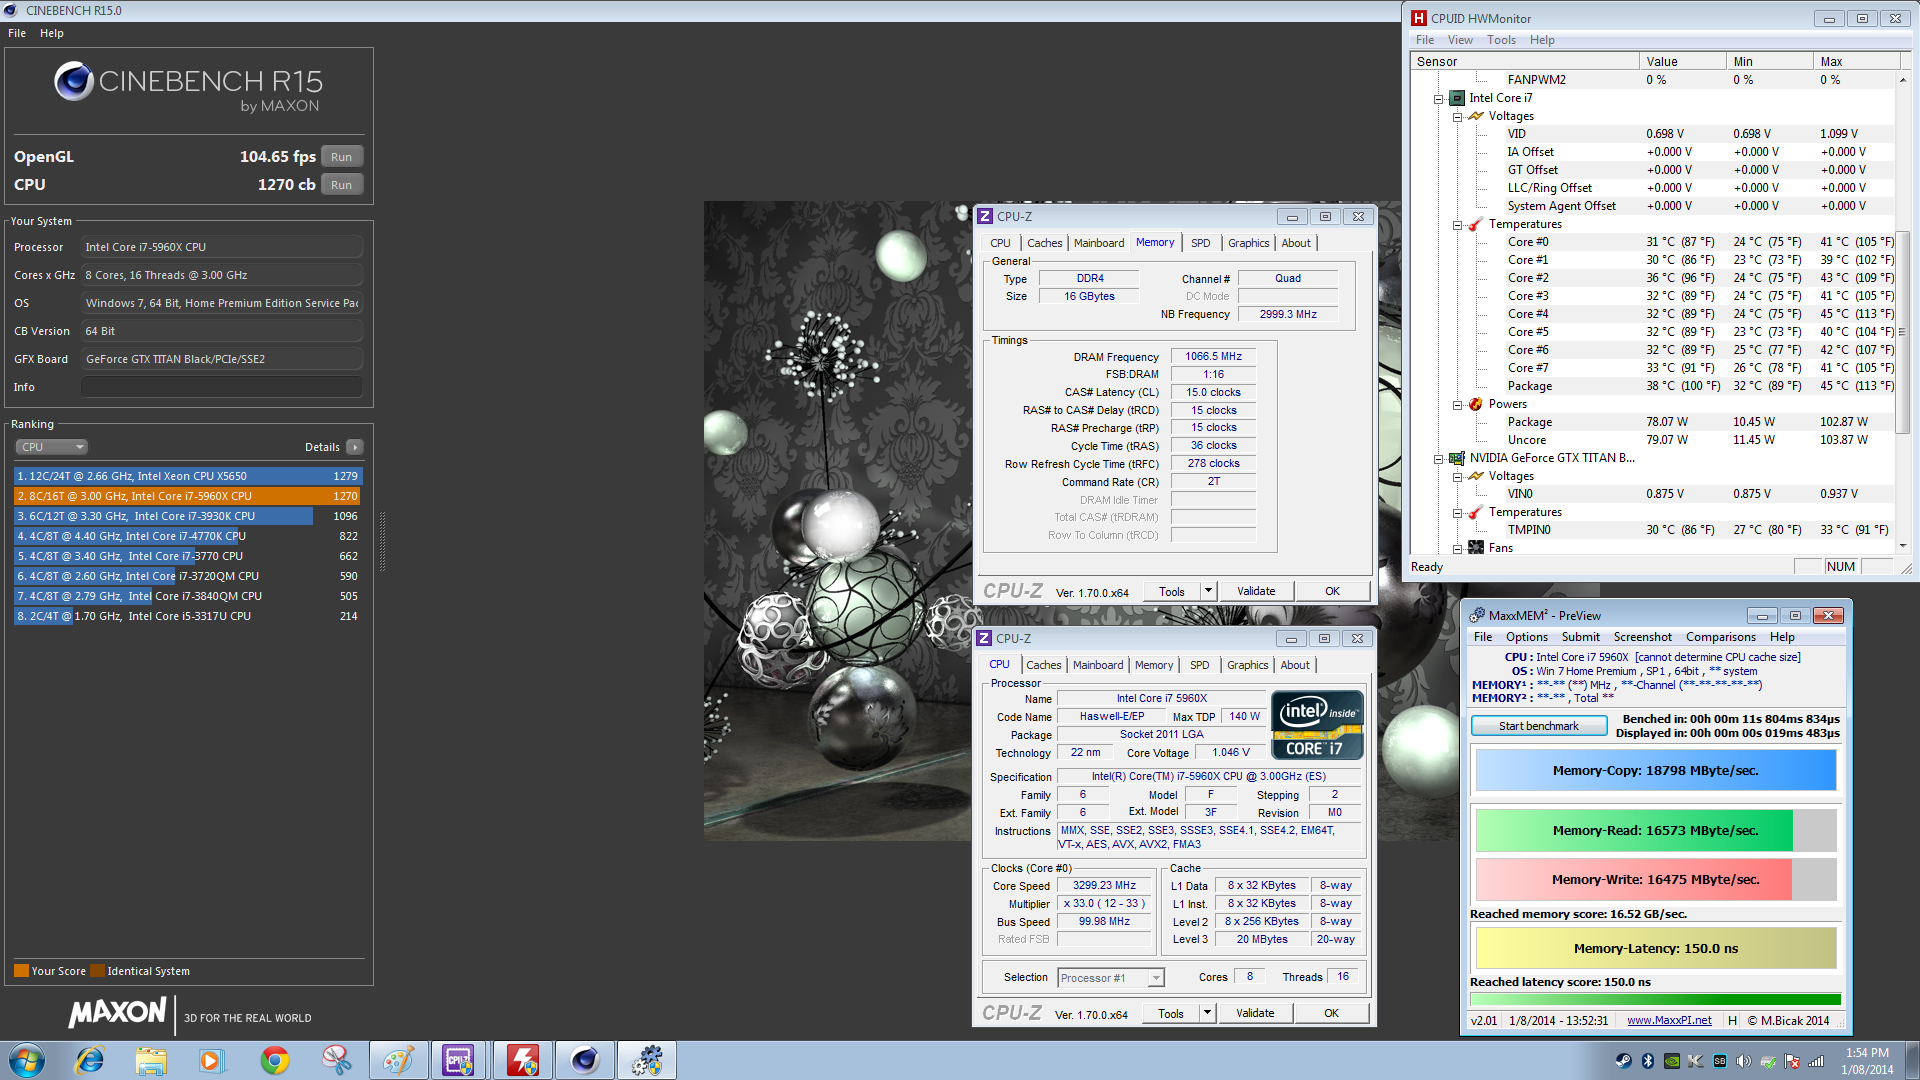 Intel-Core-i7-5960X 33 GHz-MaxxMem-Performance